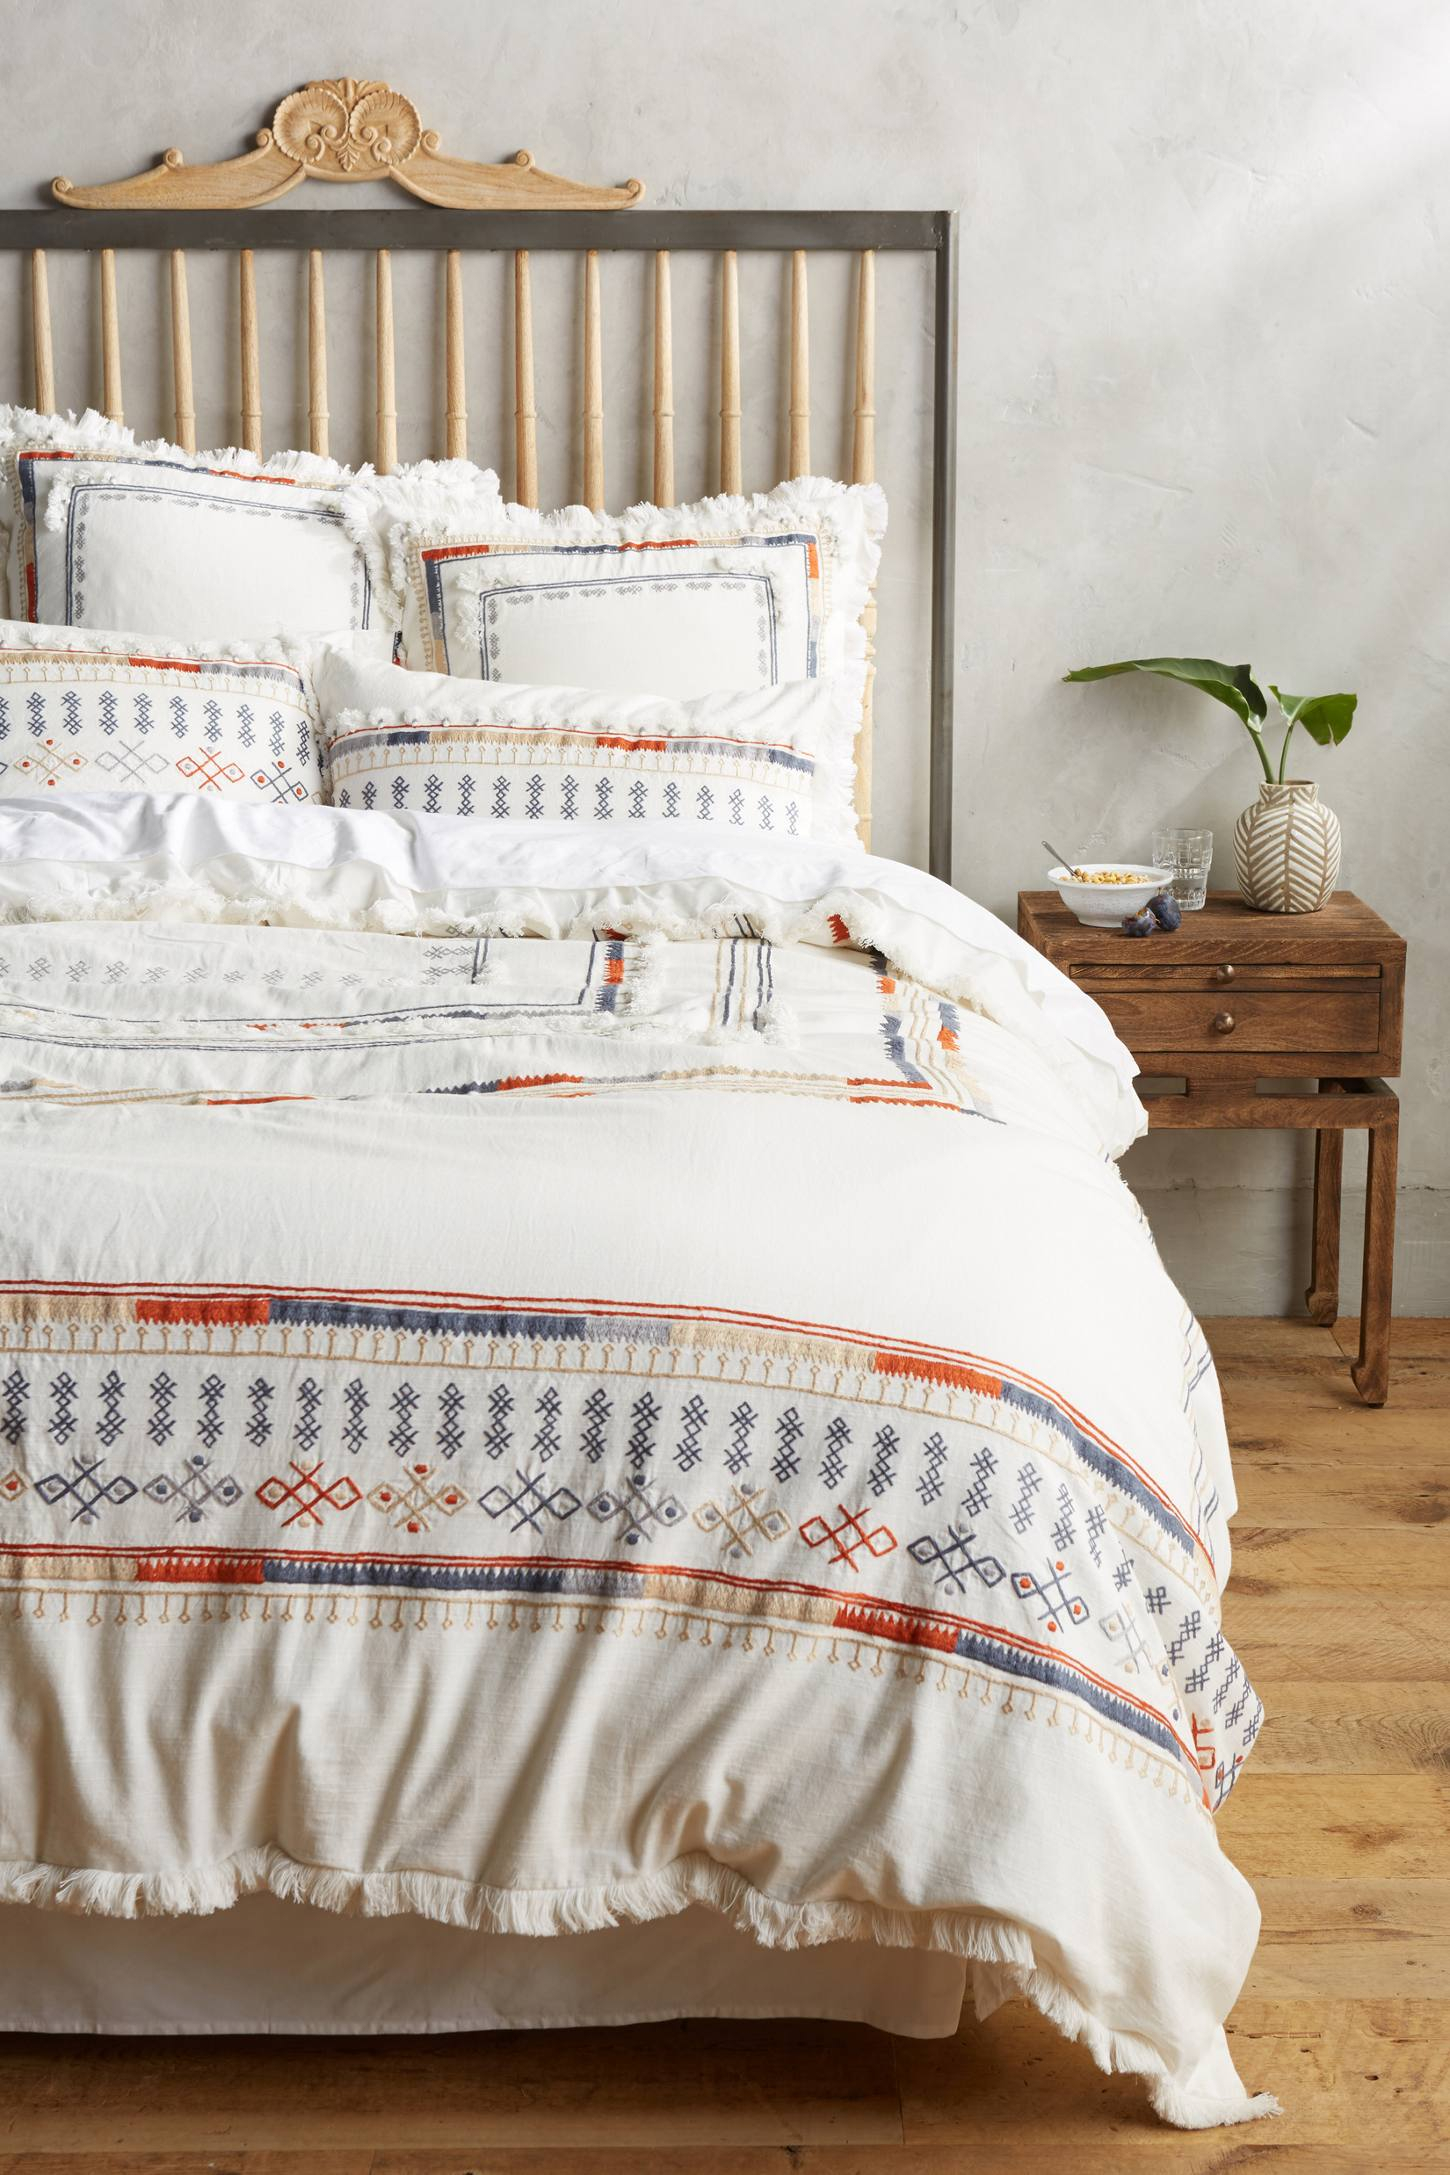 Top 43 Wonderful Bedding Similar To Anthropologie Like Urban